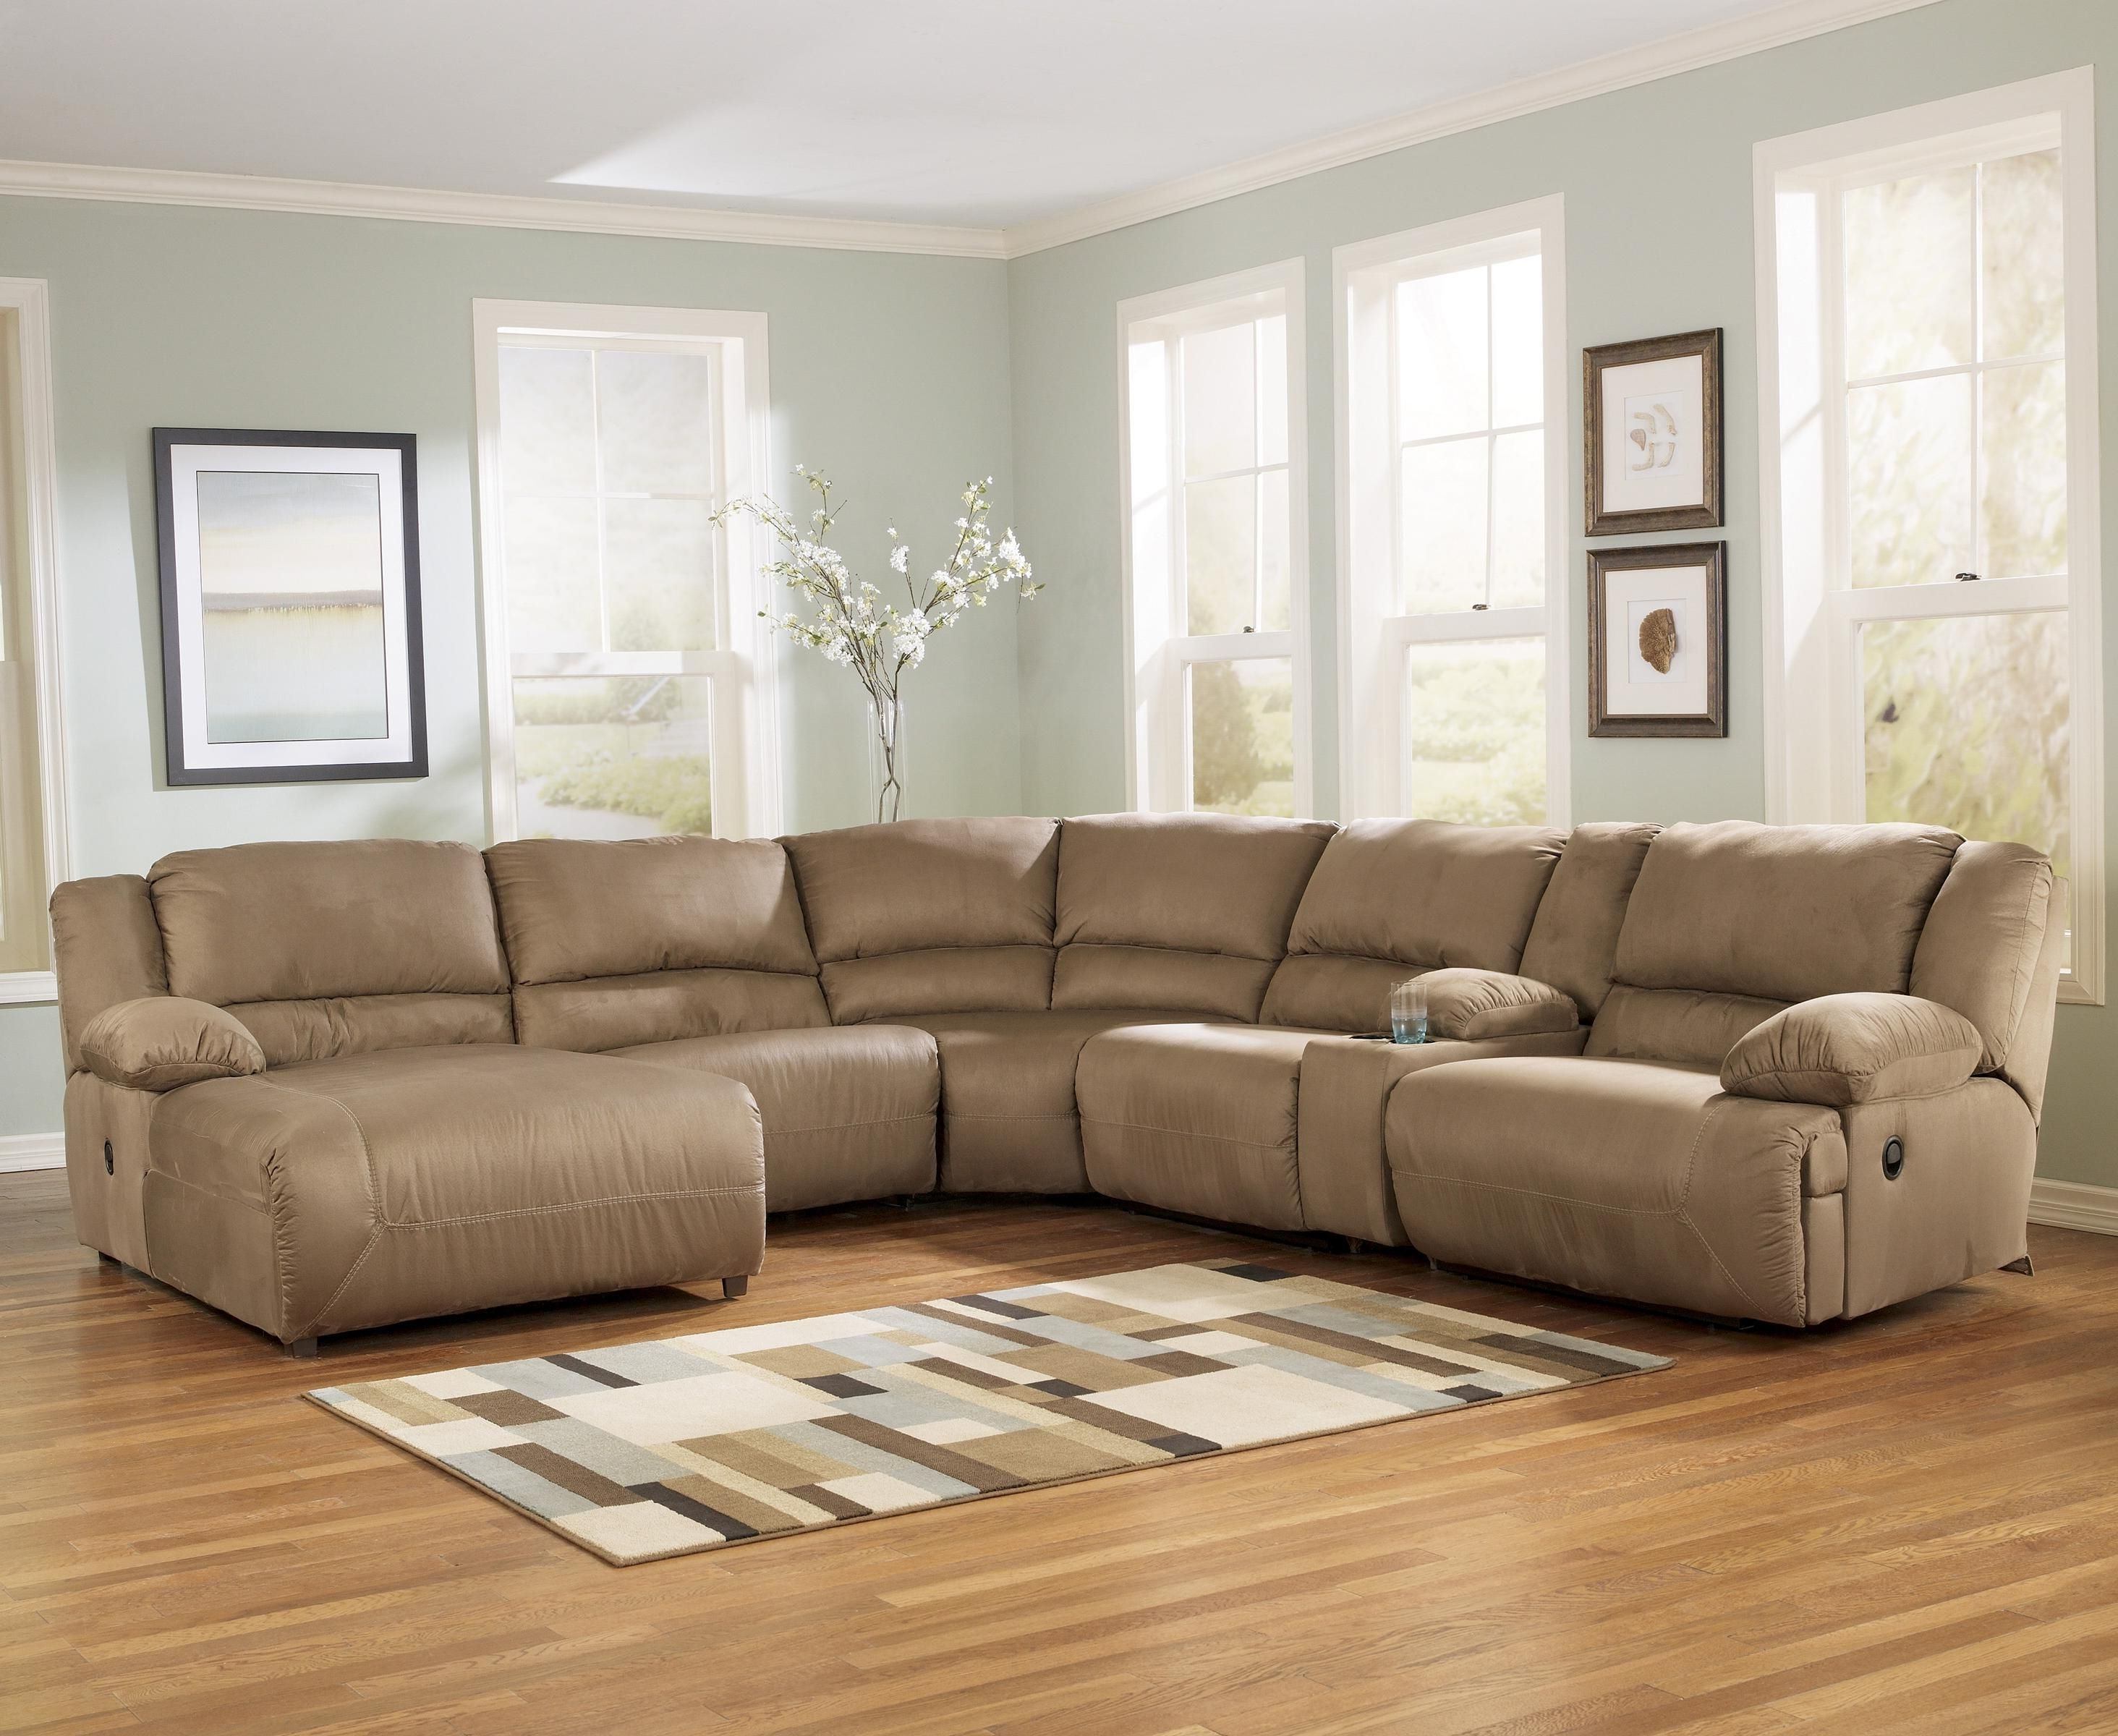 St Cloud Mn Sectional Sofas With Well Liked Hogan – Mocha 6 Piece Motion Sectional With Right Chaise And (View 15 of 15)